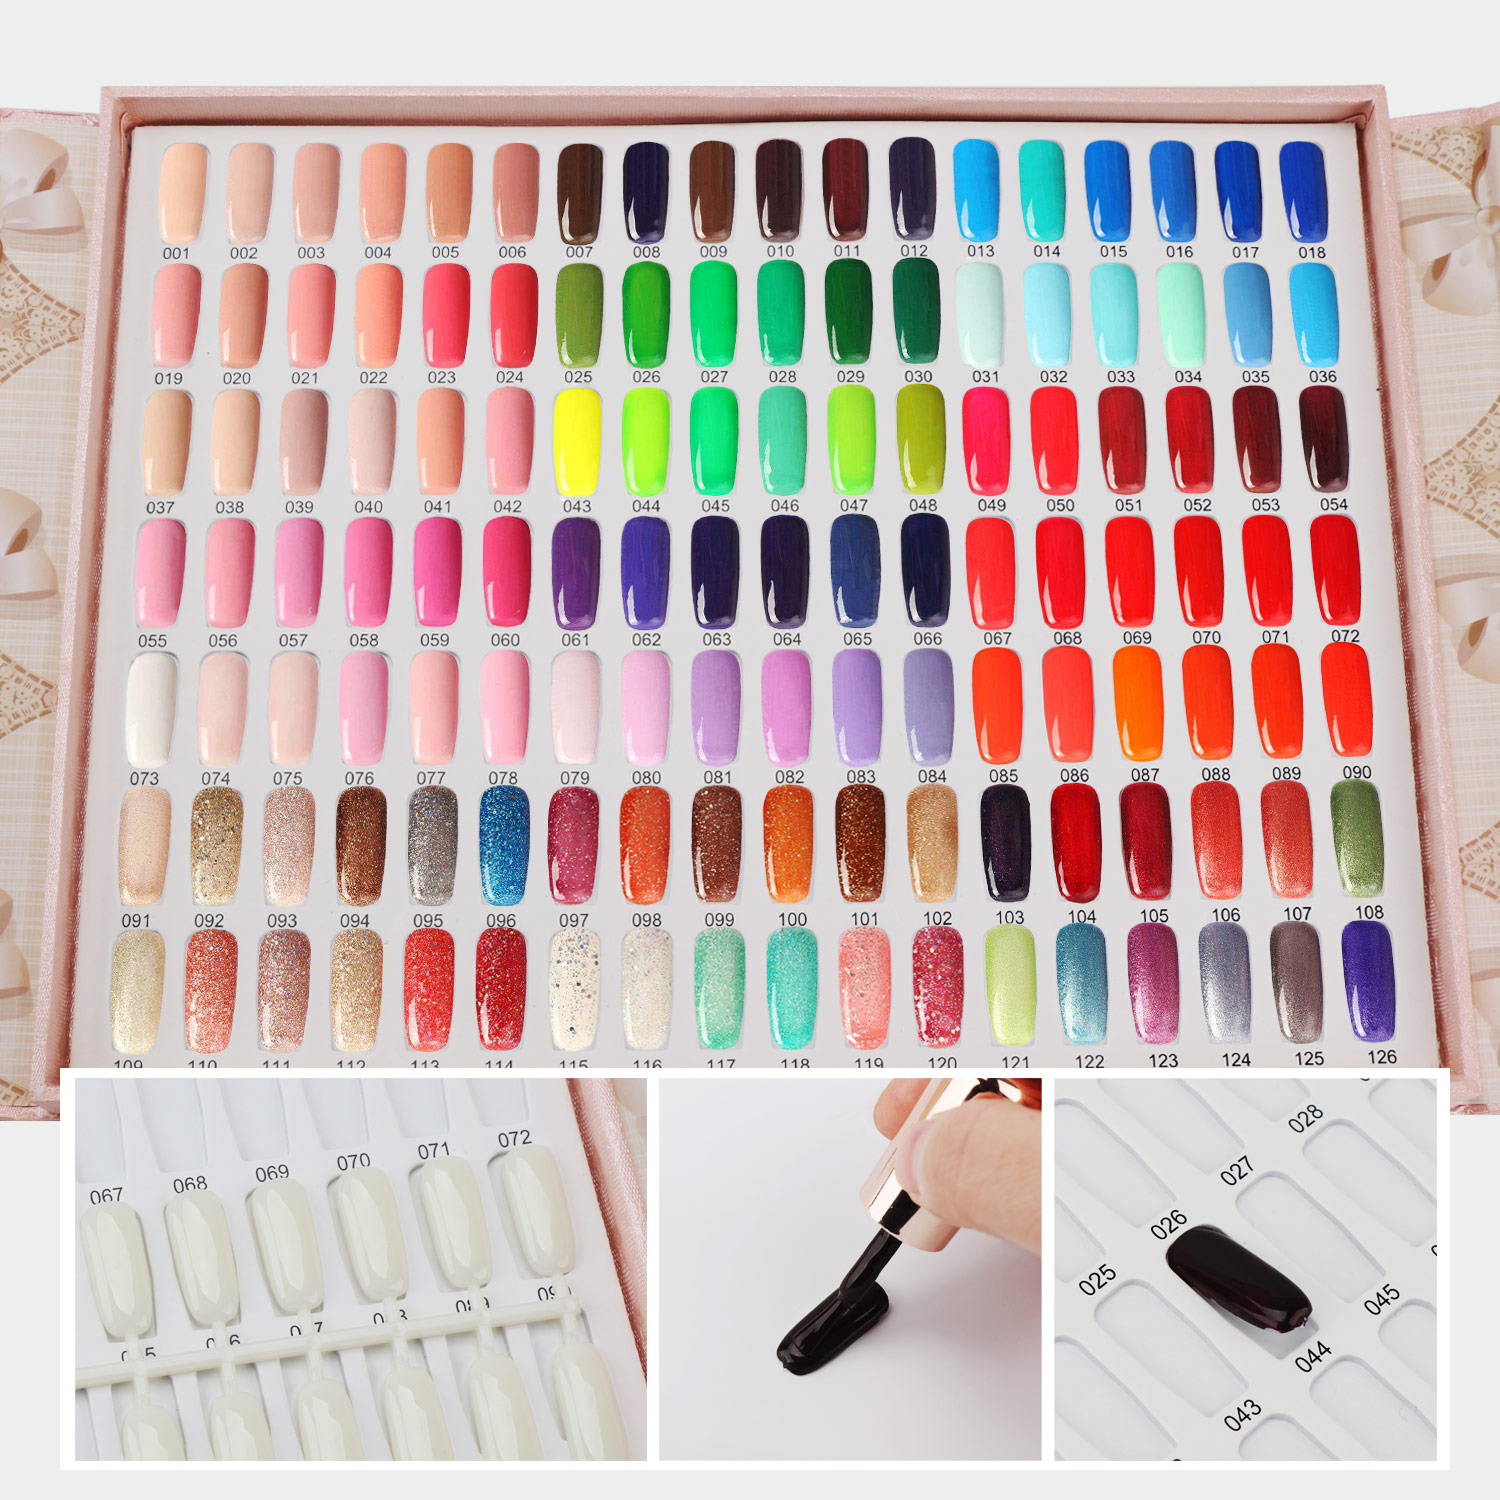 Nail Colors: Segbeauty 126 Colors Professional Nail Polish Colors Chart